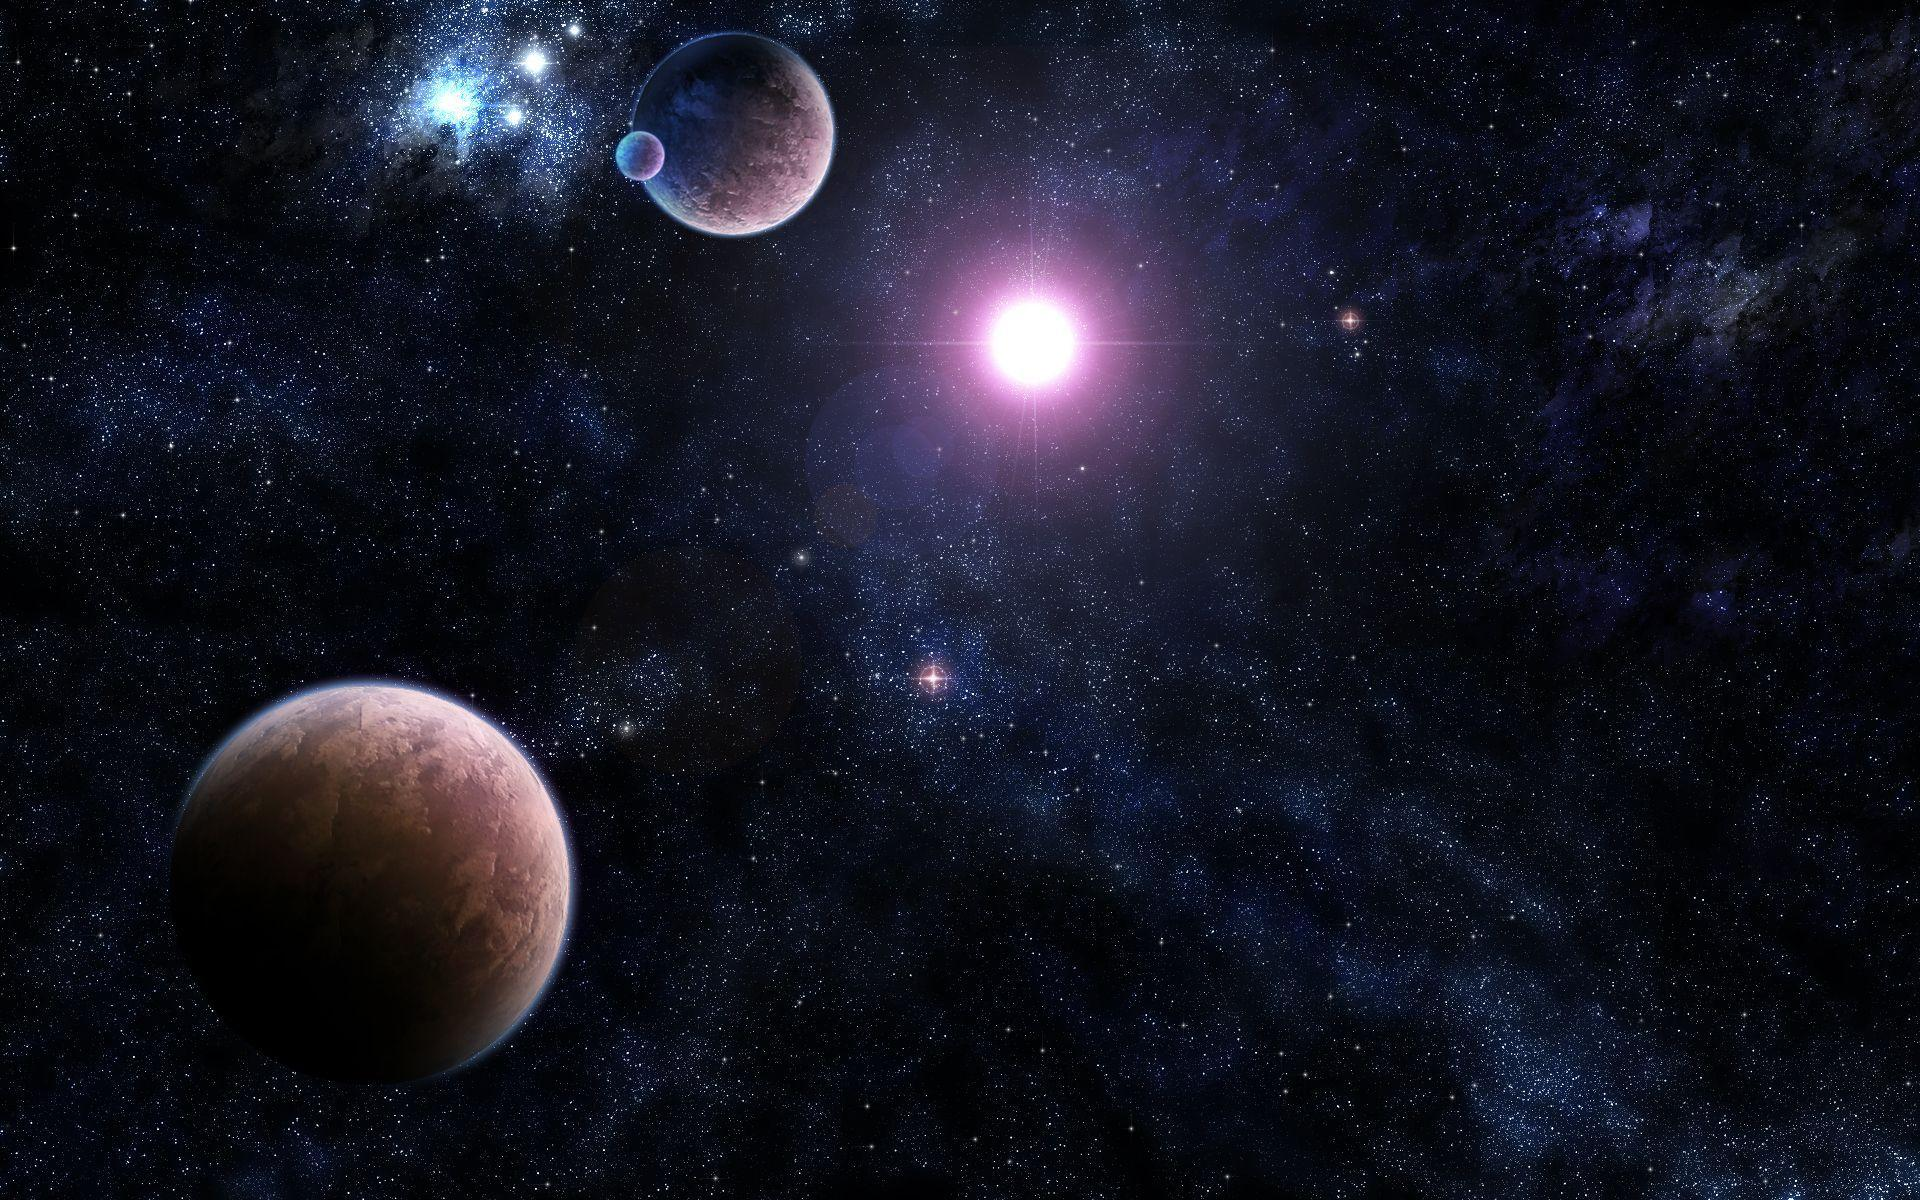 solar system wallpapers for desktop - photo #19